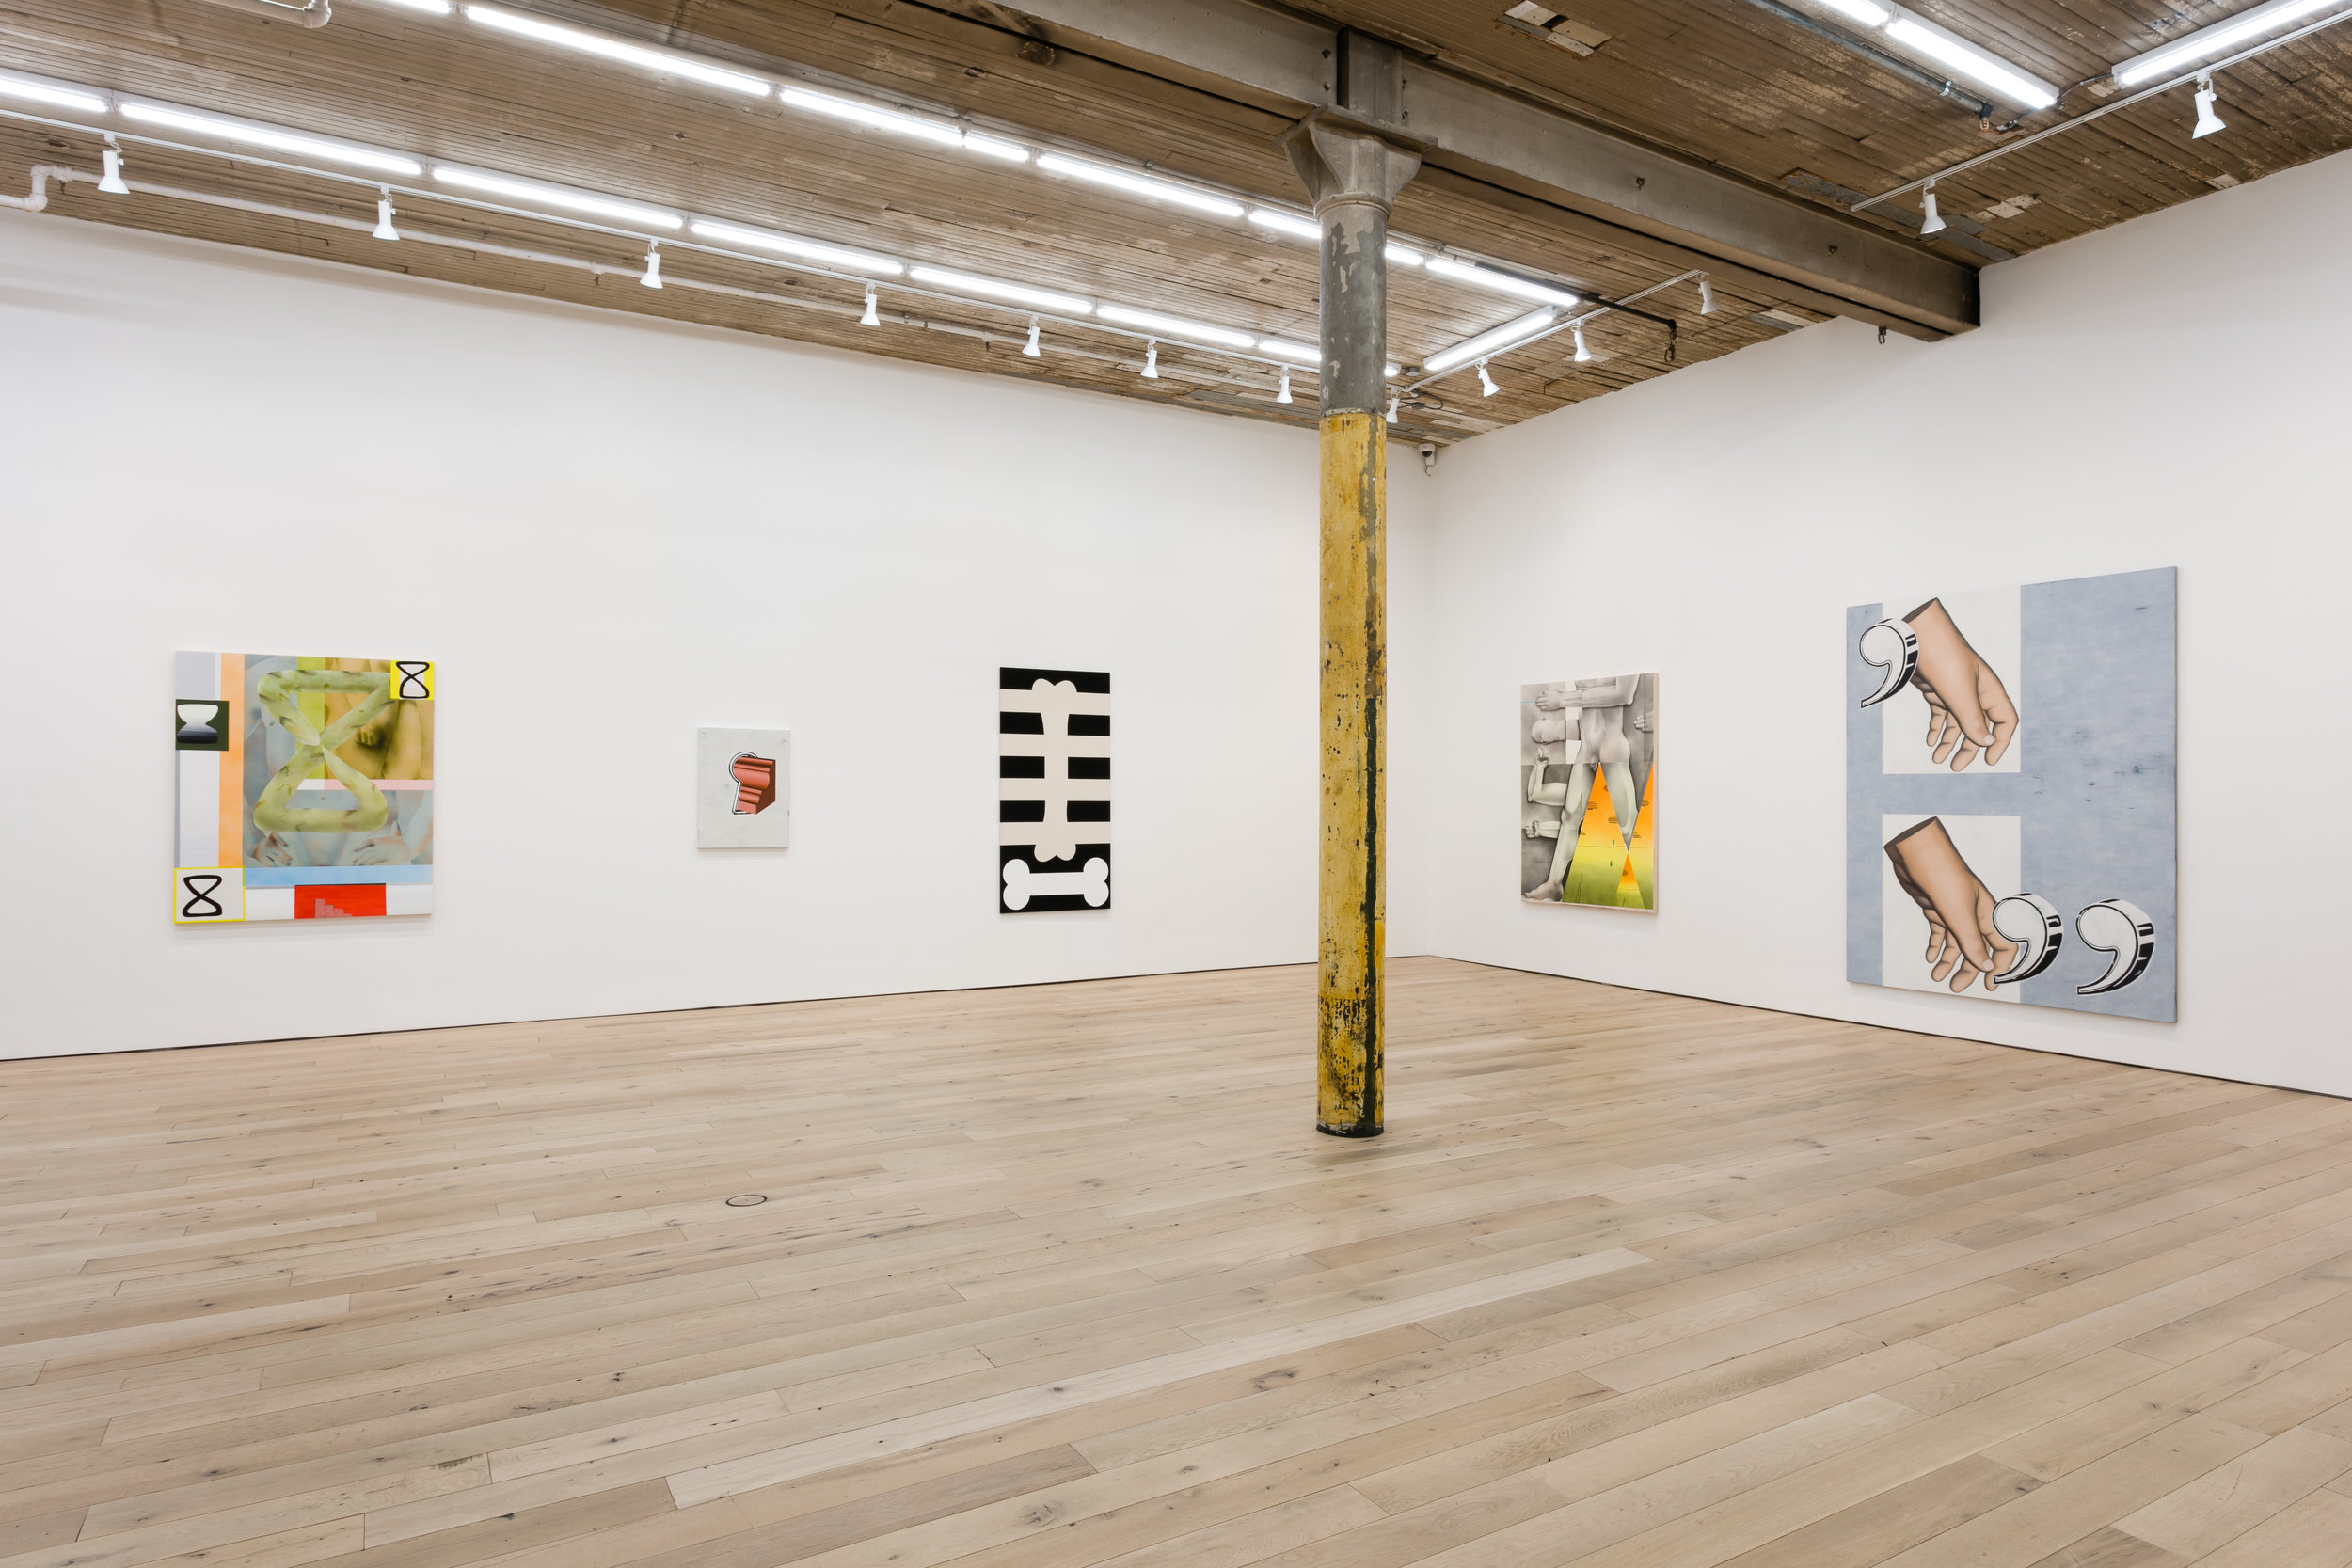 Installation View,  Eight Ball,  Martos Gallery, New York, NY, 2019